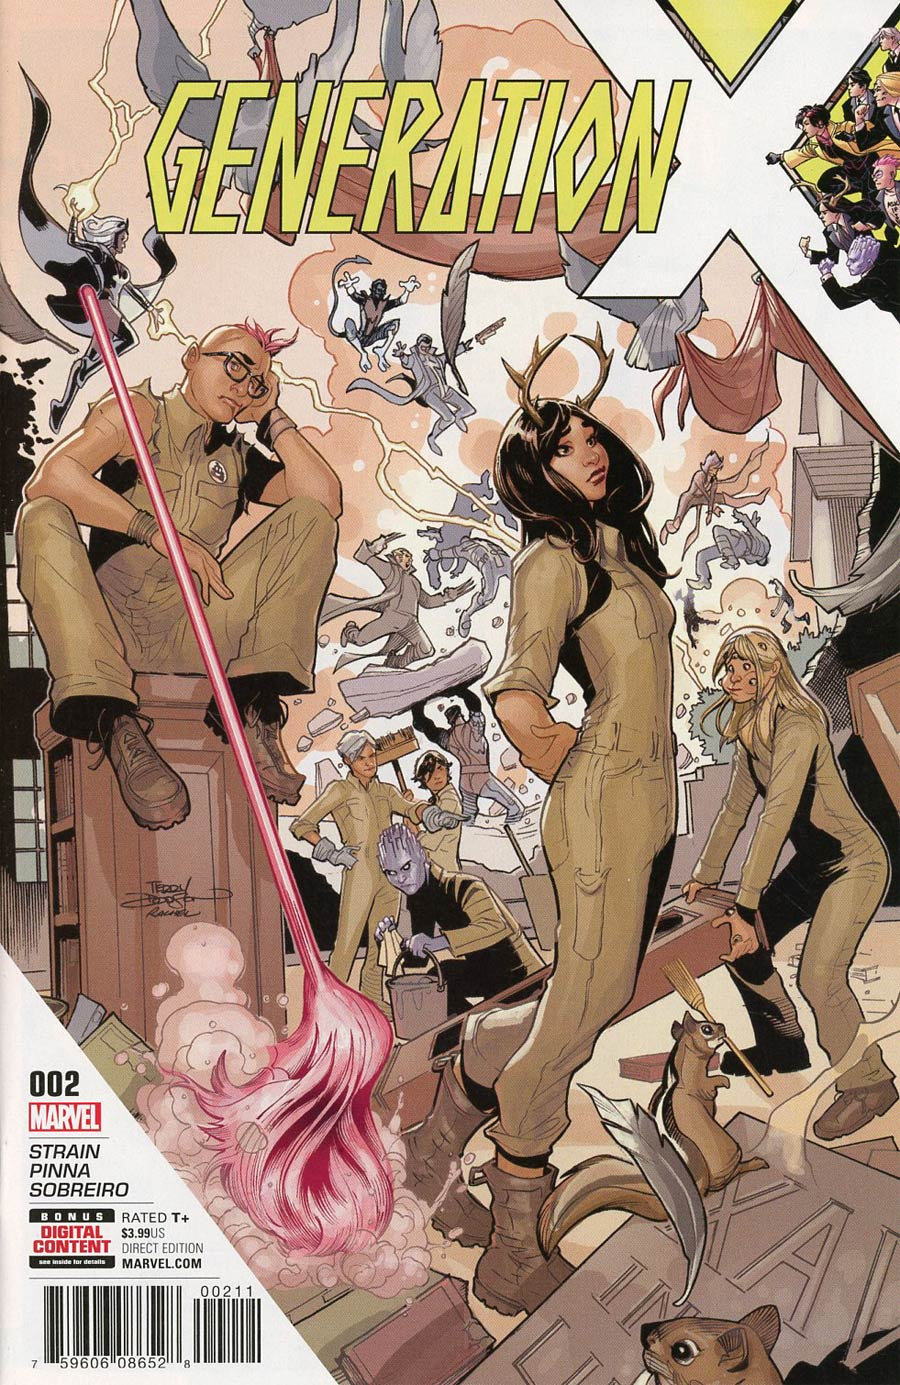 Generation X Vol 2 #2 Cover A Regular Terry Dodson Cover (Resurrxion Tie-In)